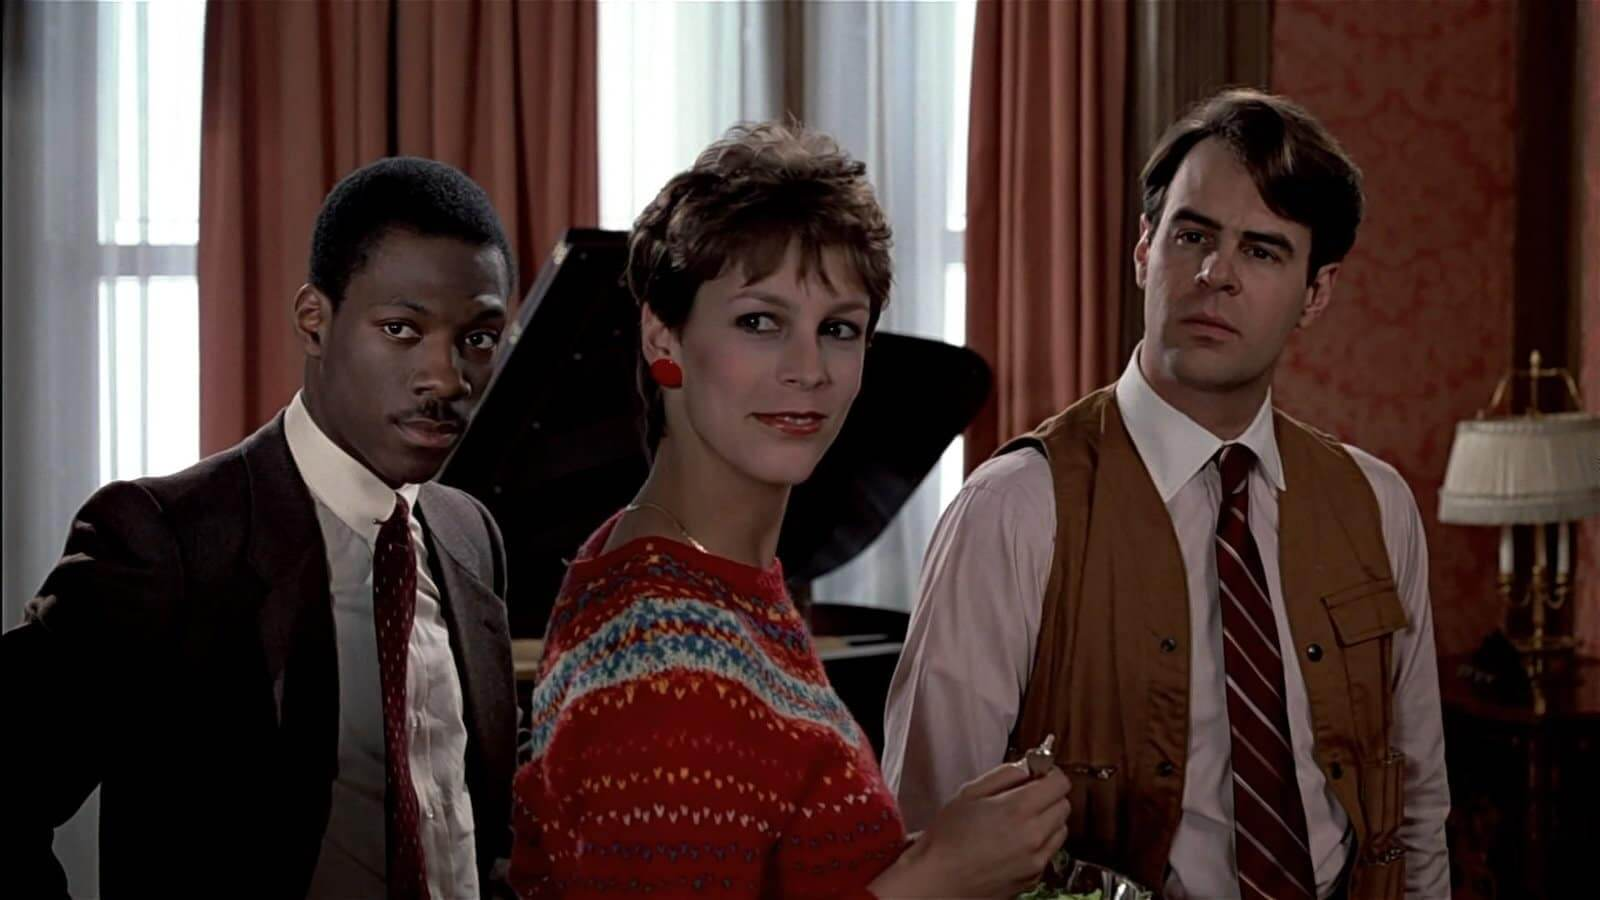 Best Comedy Movies of all time - Trading Places - Eddie Murphy - StudioBinder